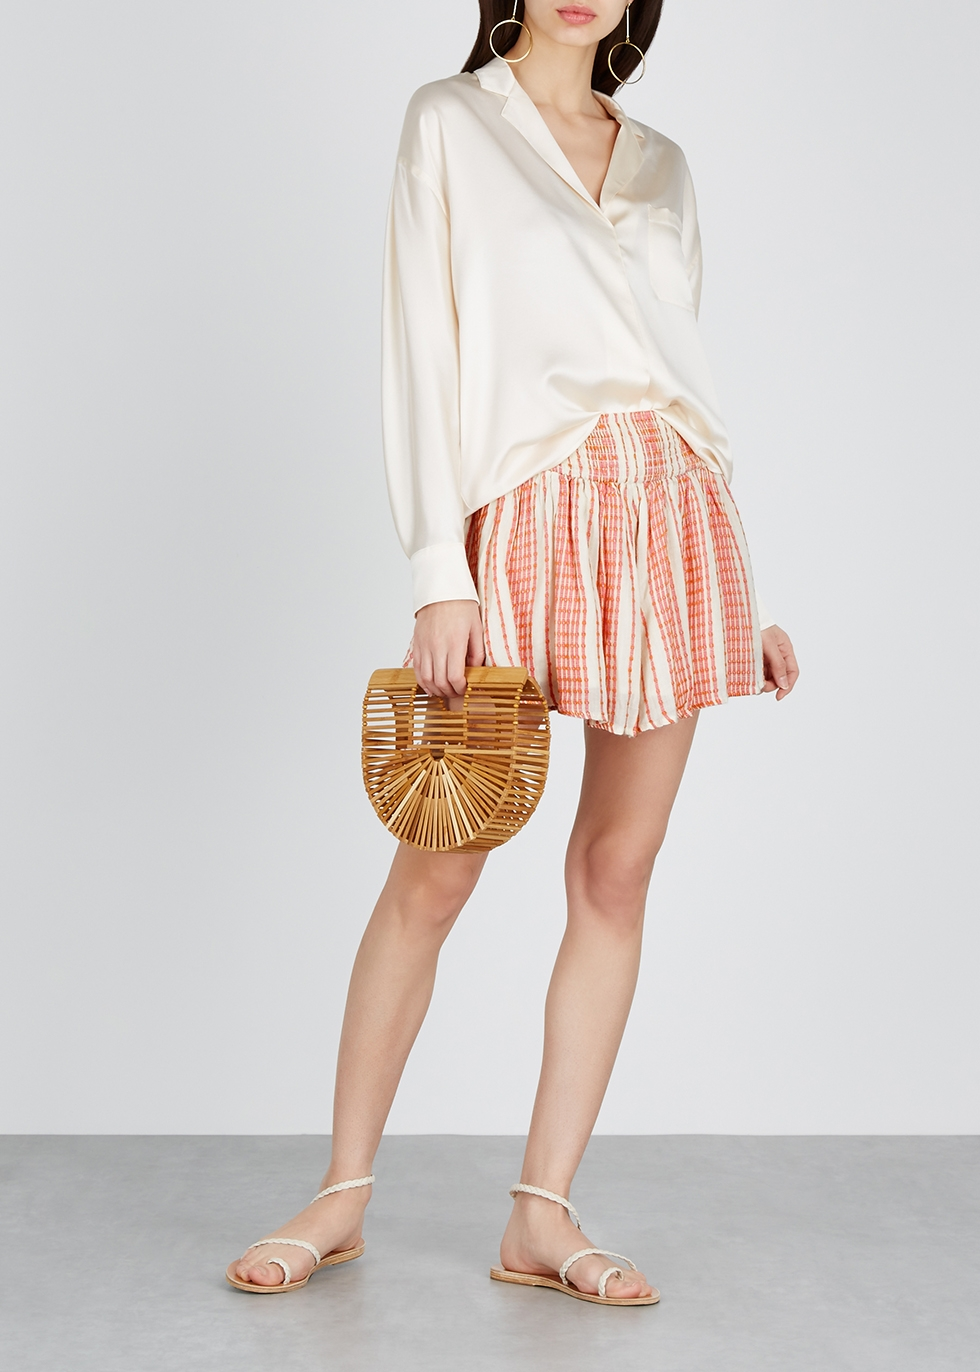 She Will Be Loved striped rayon shorts - Free People